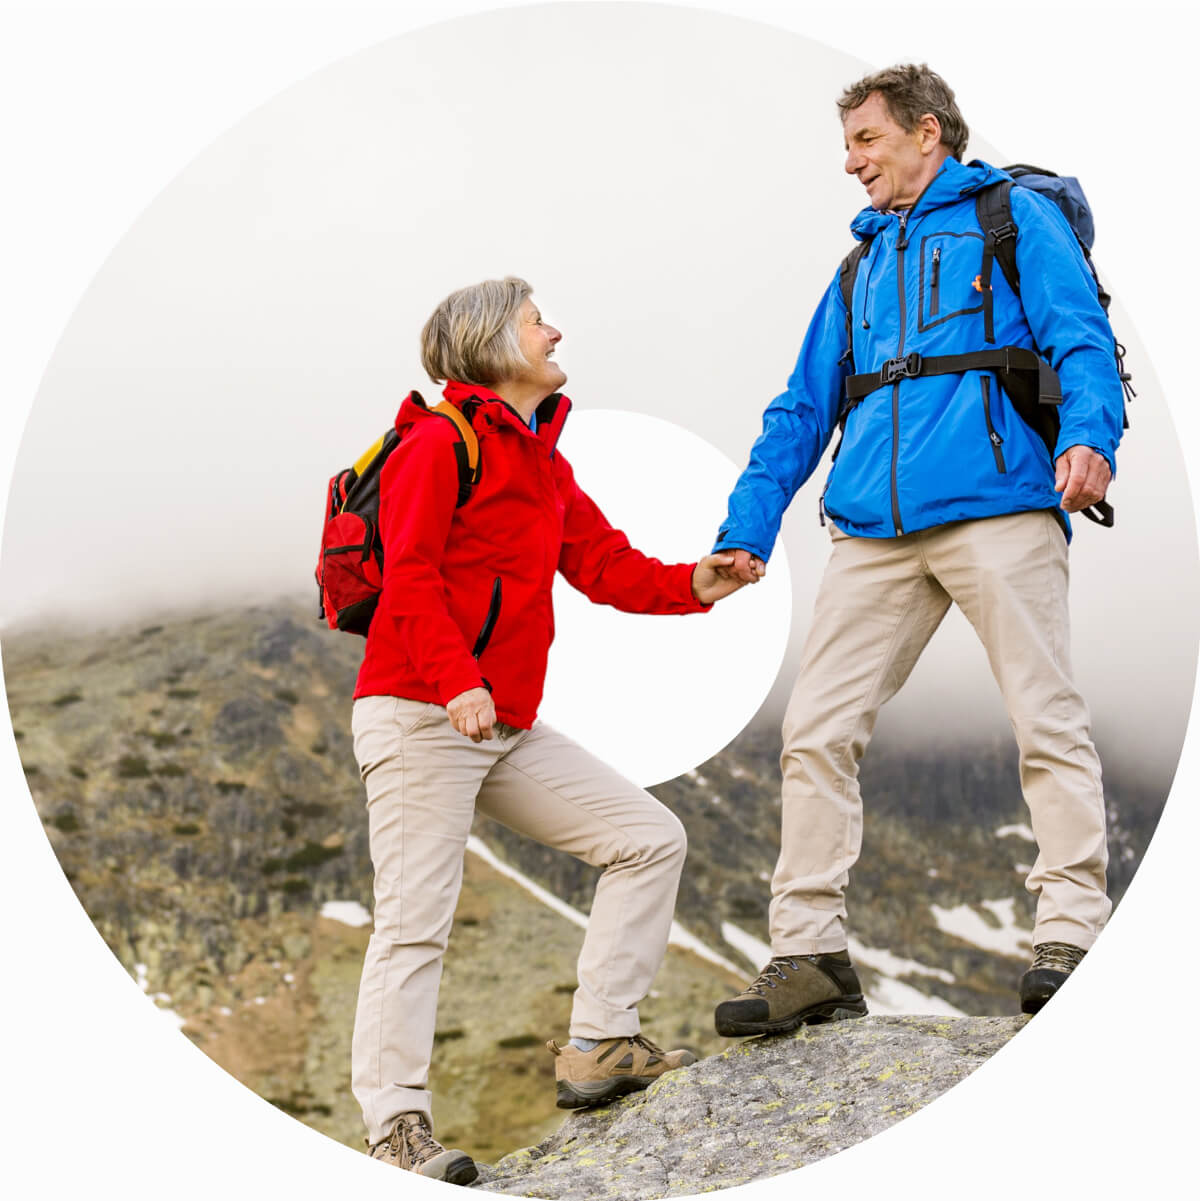 Man and Woman hiking on top of a mountain